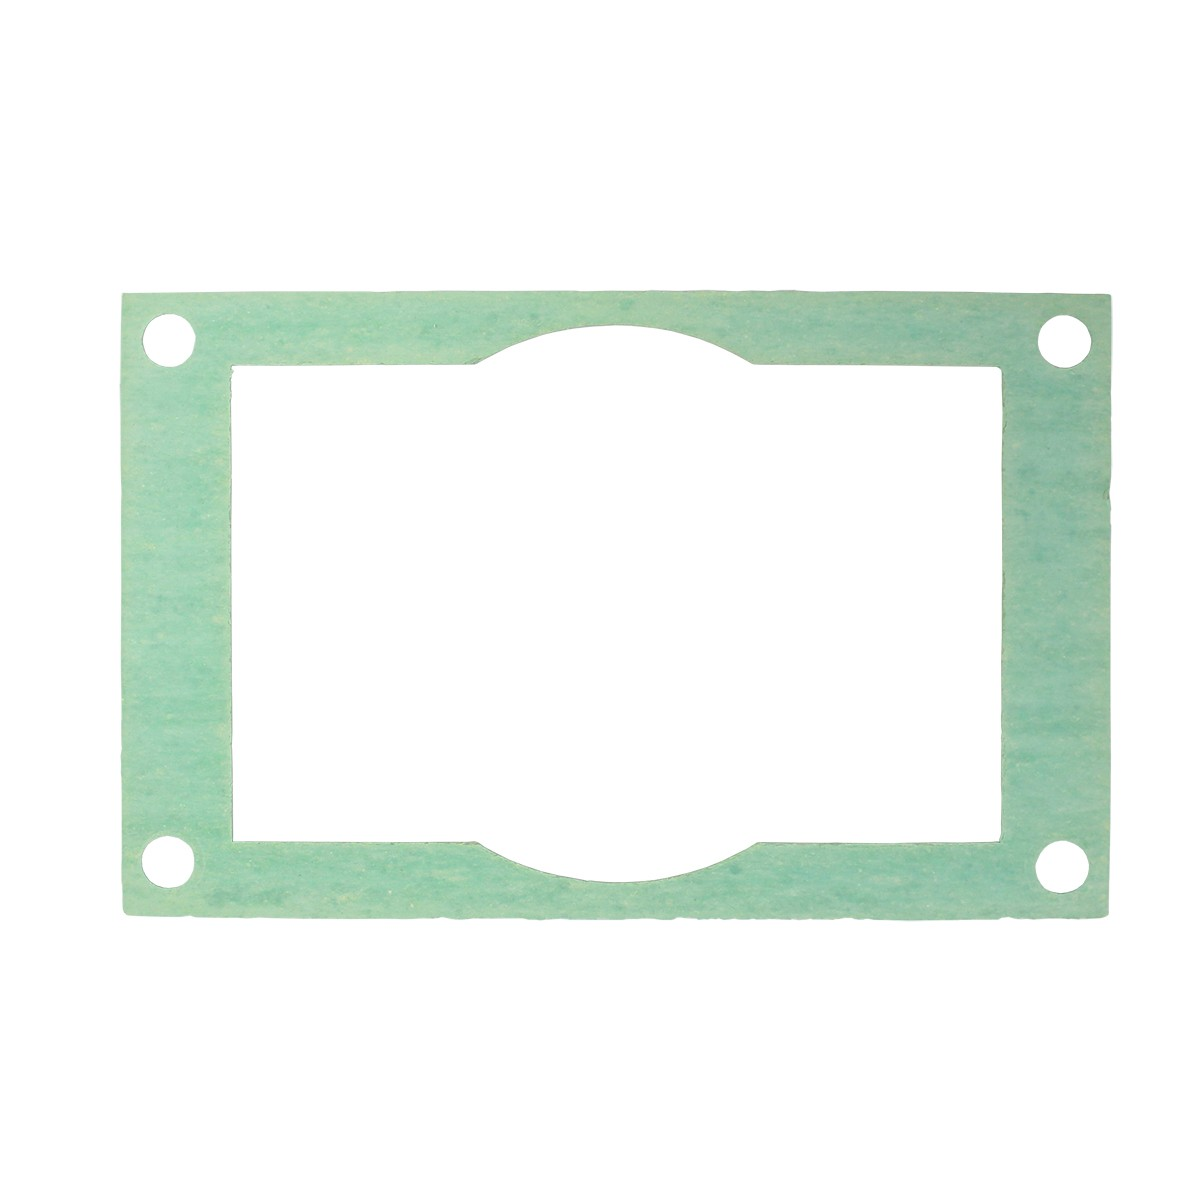 *New Style* Table Top Vulcanizer Heating Element Gasket - Standard